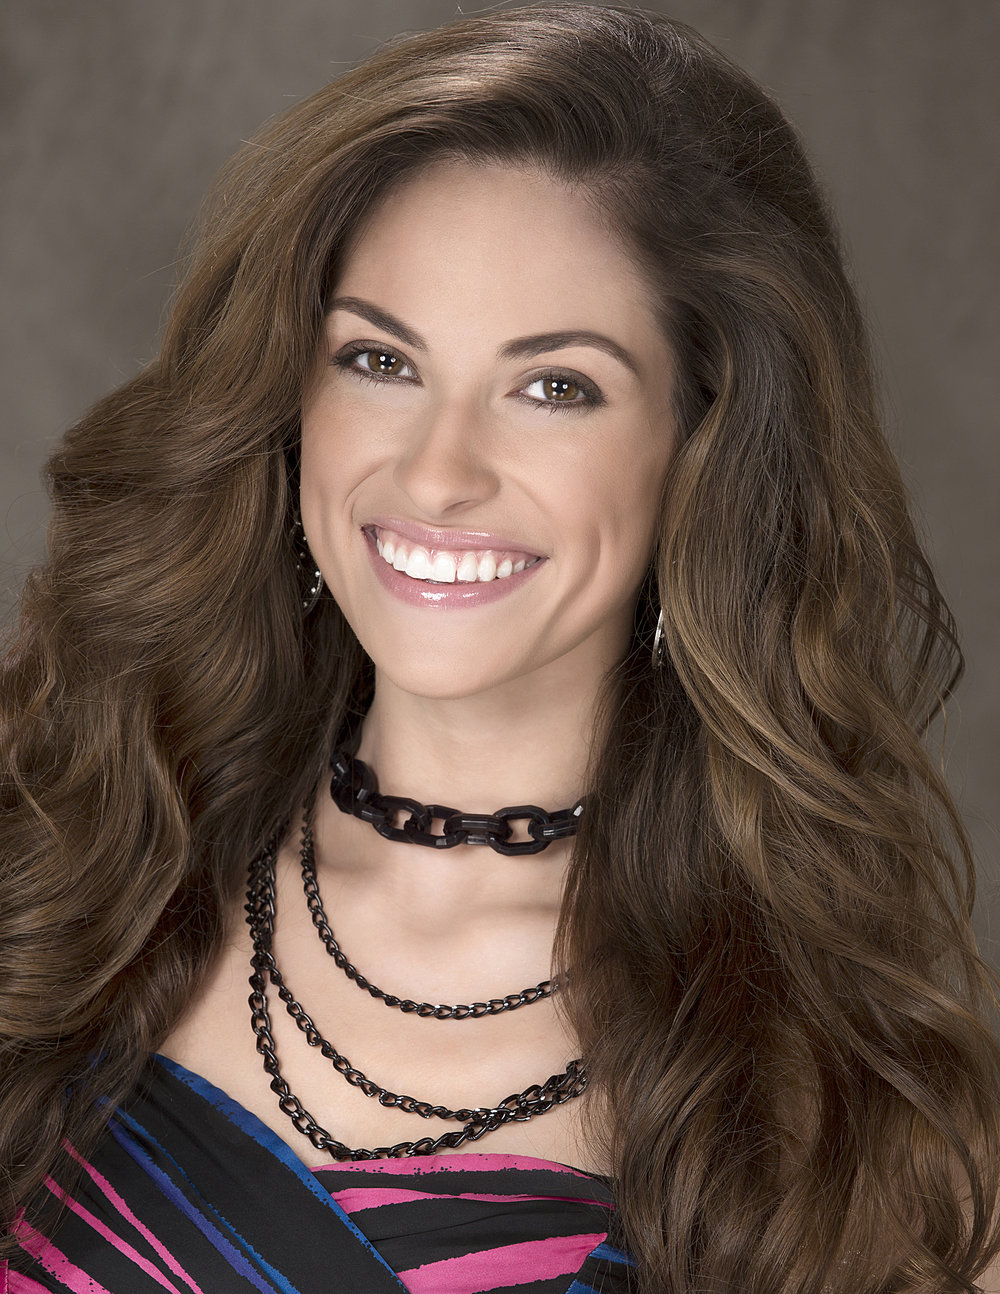 ALEXINA FEDERHEN   Central New York   Talent: Vocal   Platform: You Are Not Alone: Supporting Mental Health Awareness